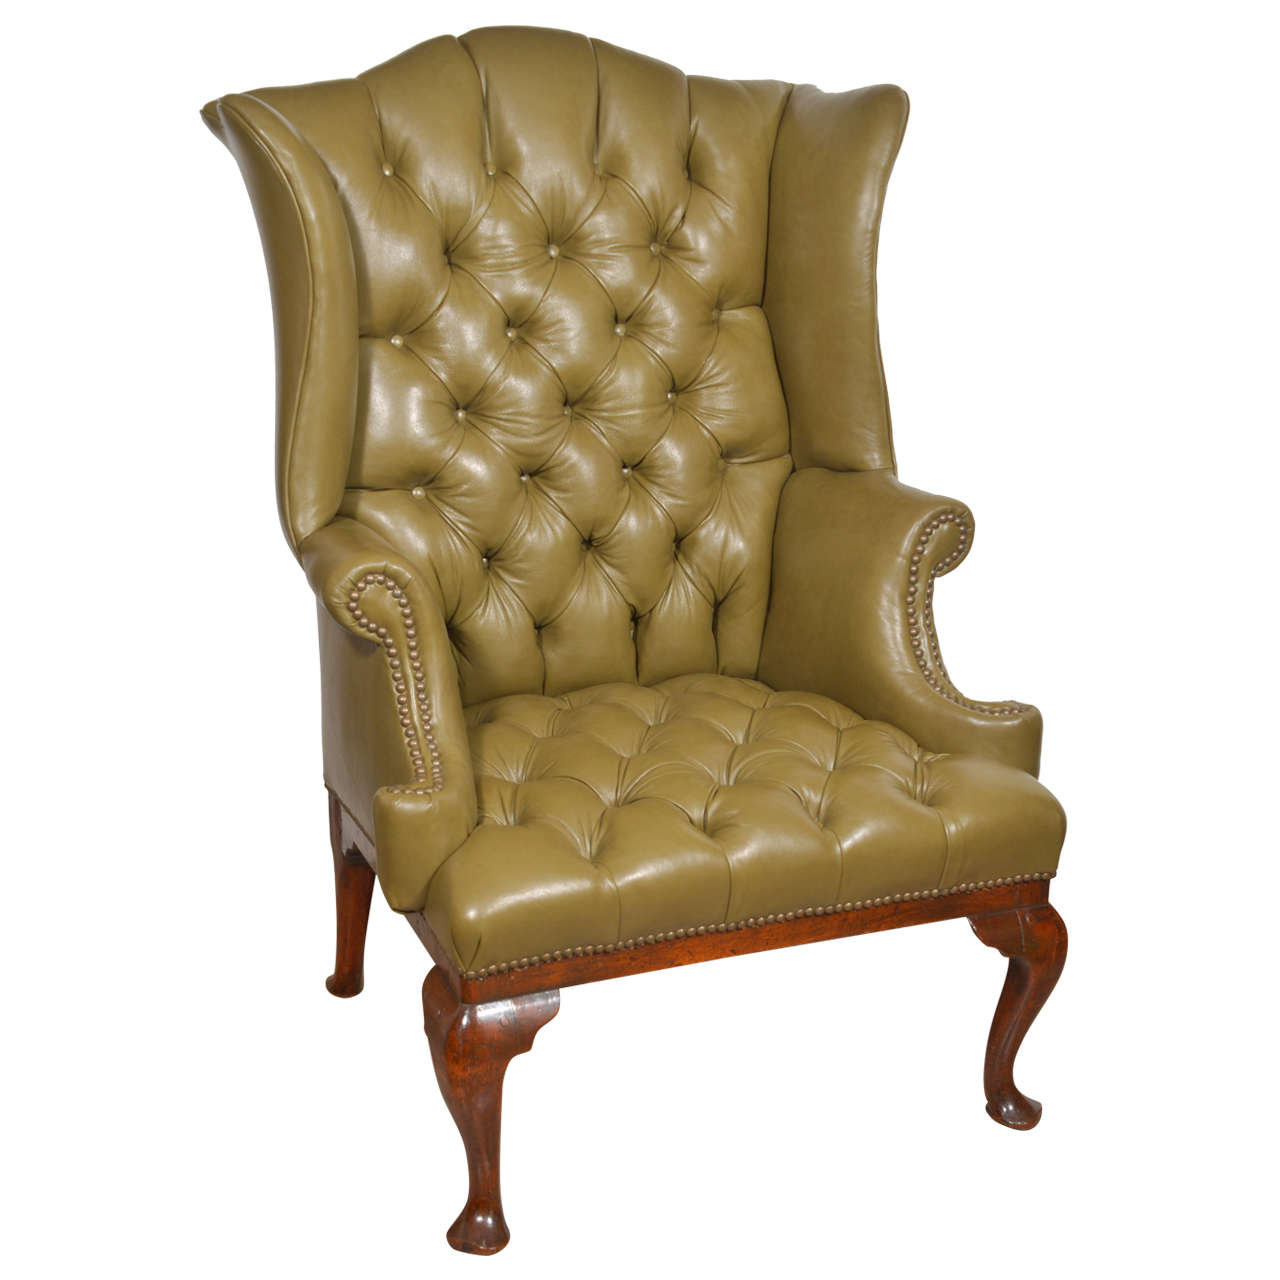 Queen Chairs 18th Century English Tufted Leather Queen Anne Wing Chair